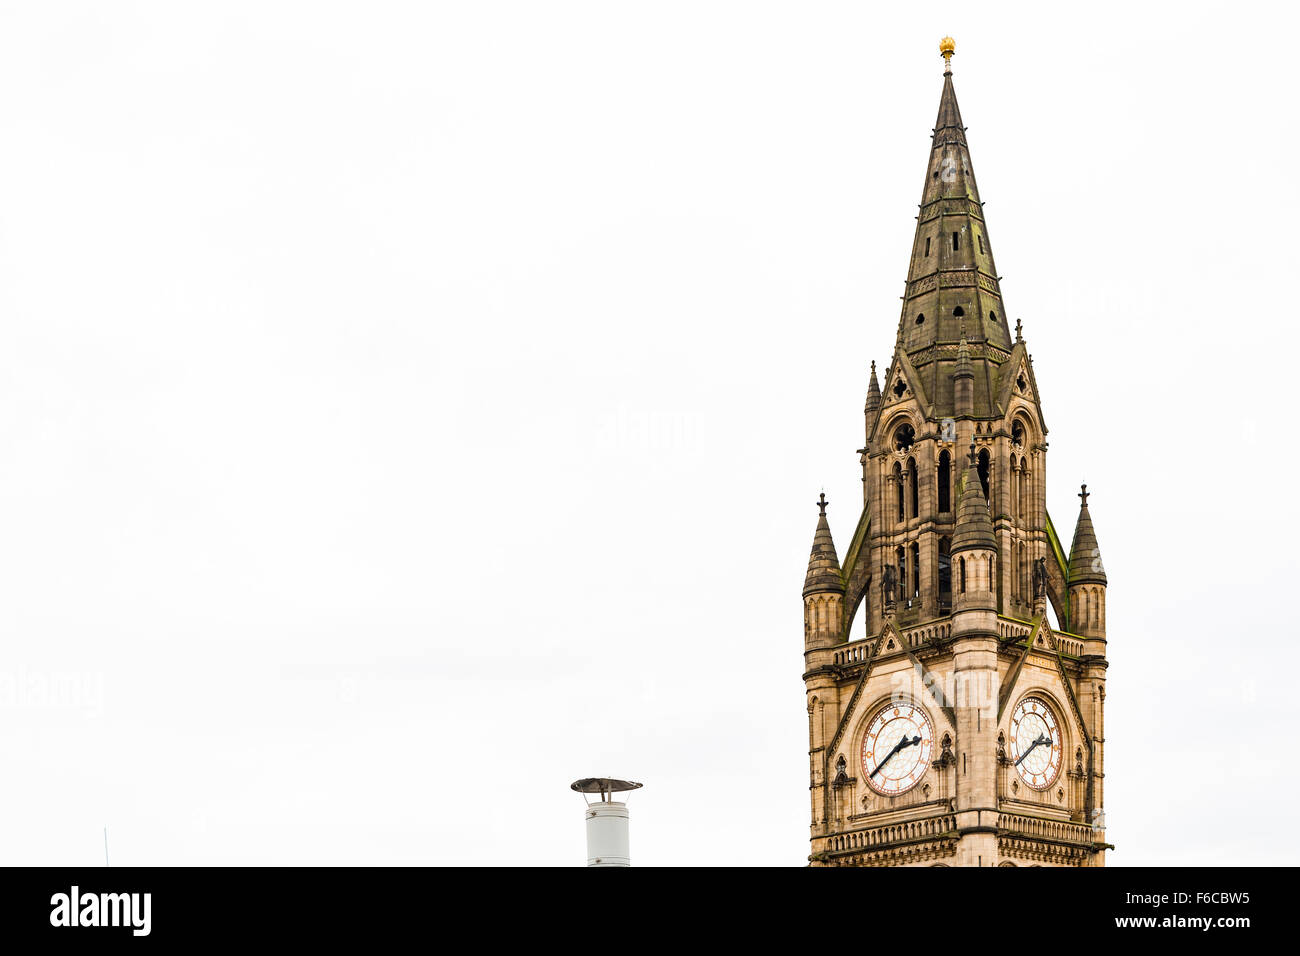 Manchester Town Hall, Manchester UK. Neo Gothic style, designed by architect Alfred Waterhouse - Stock Image